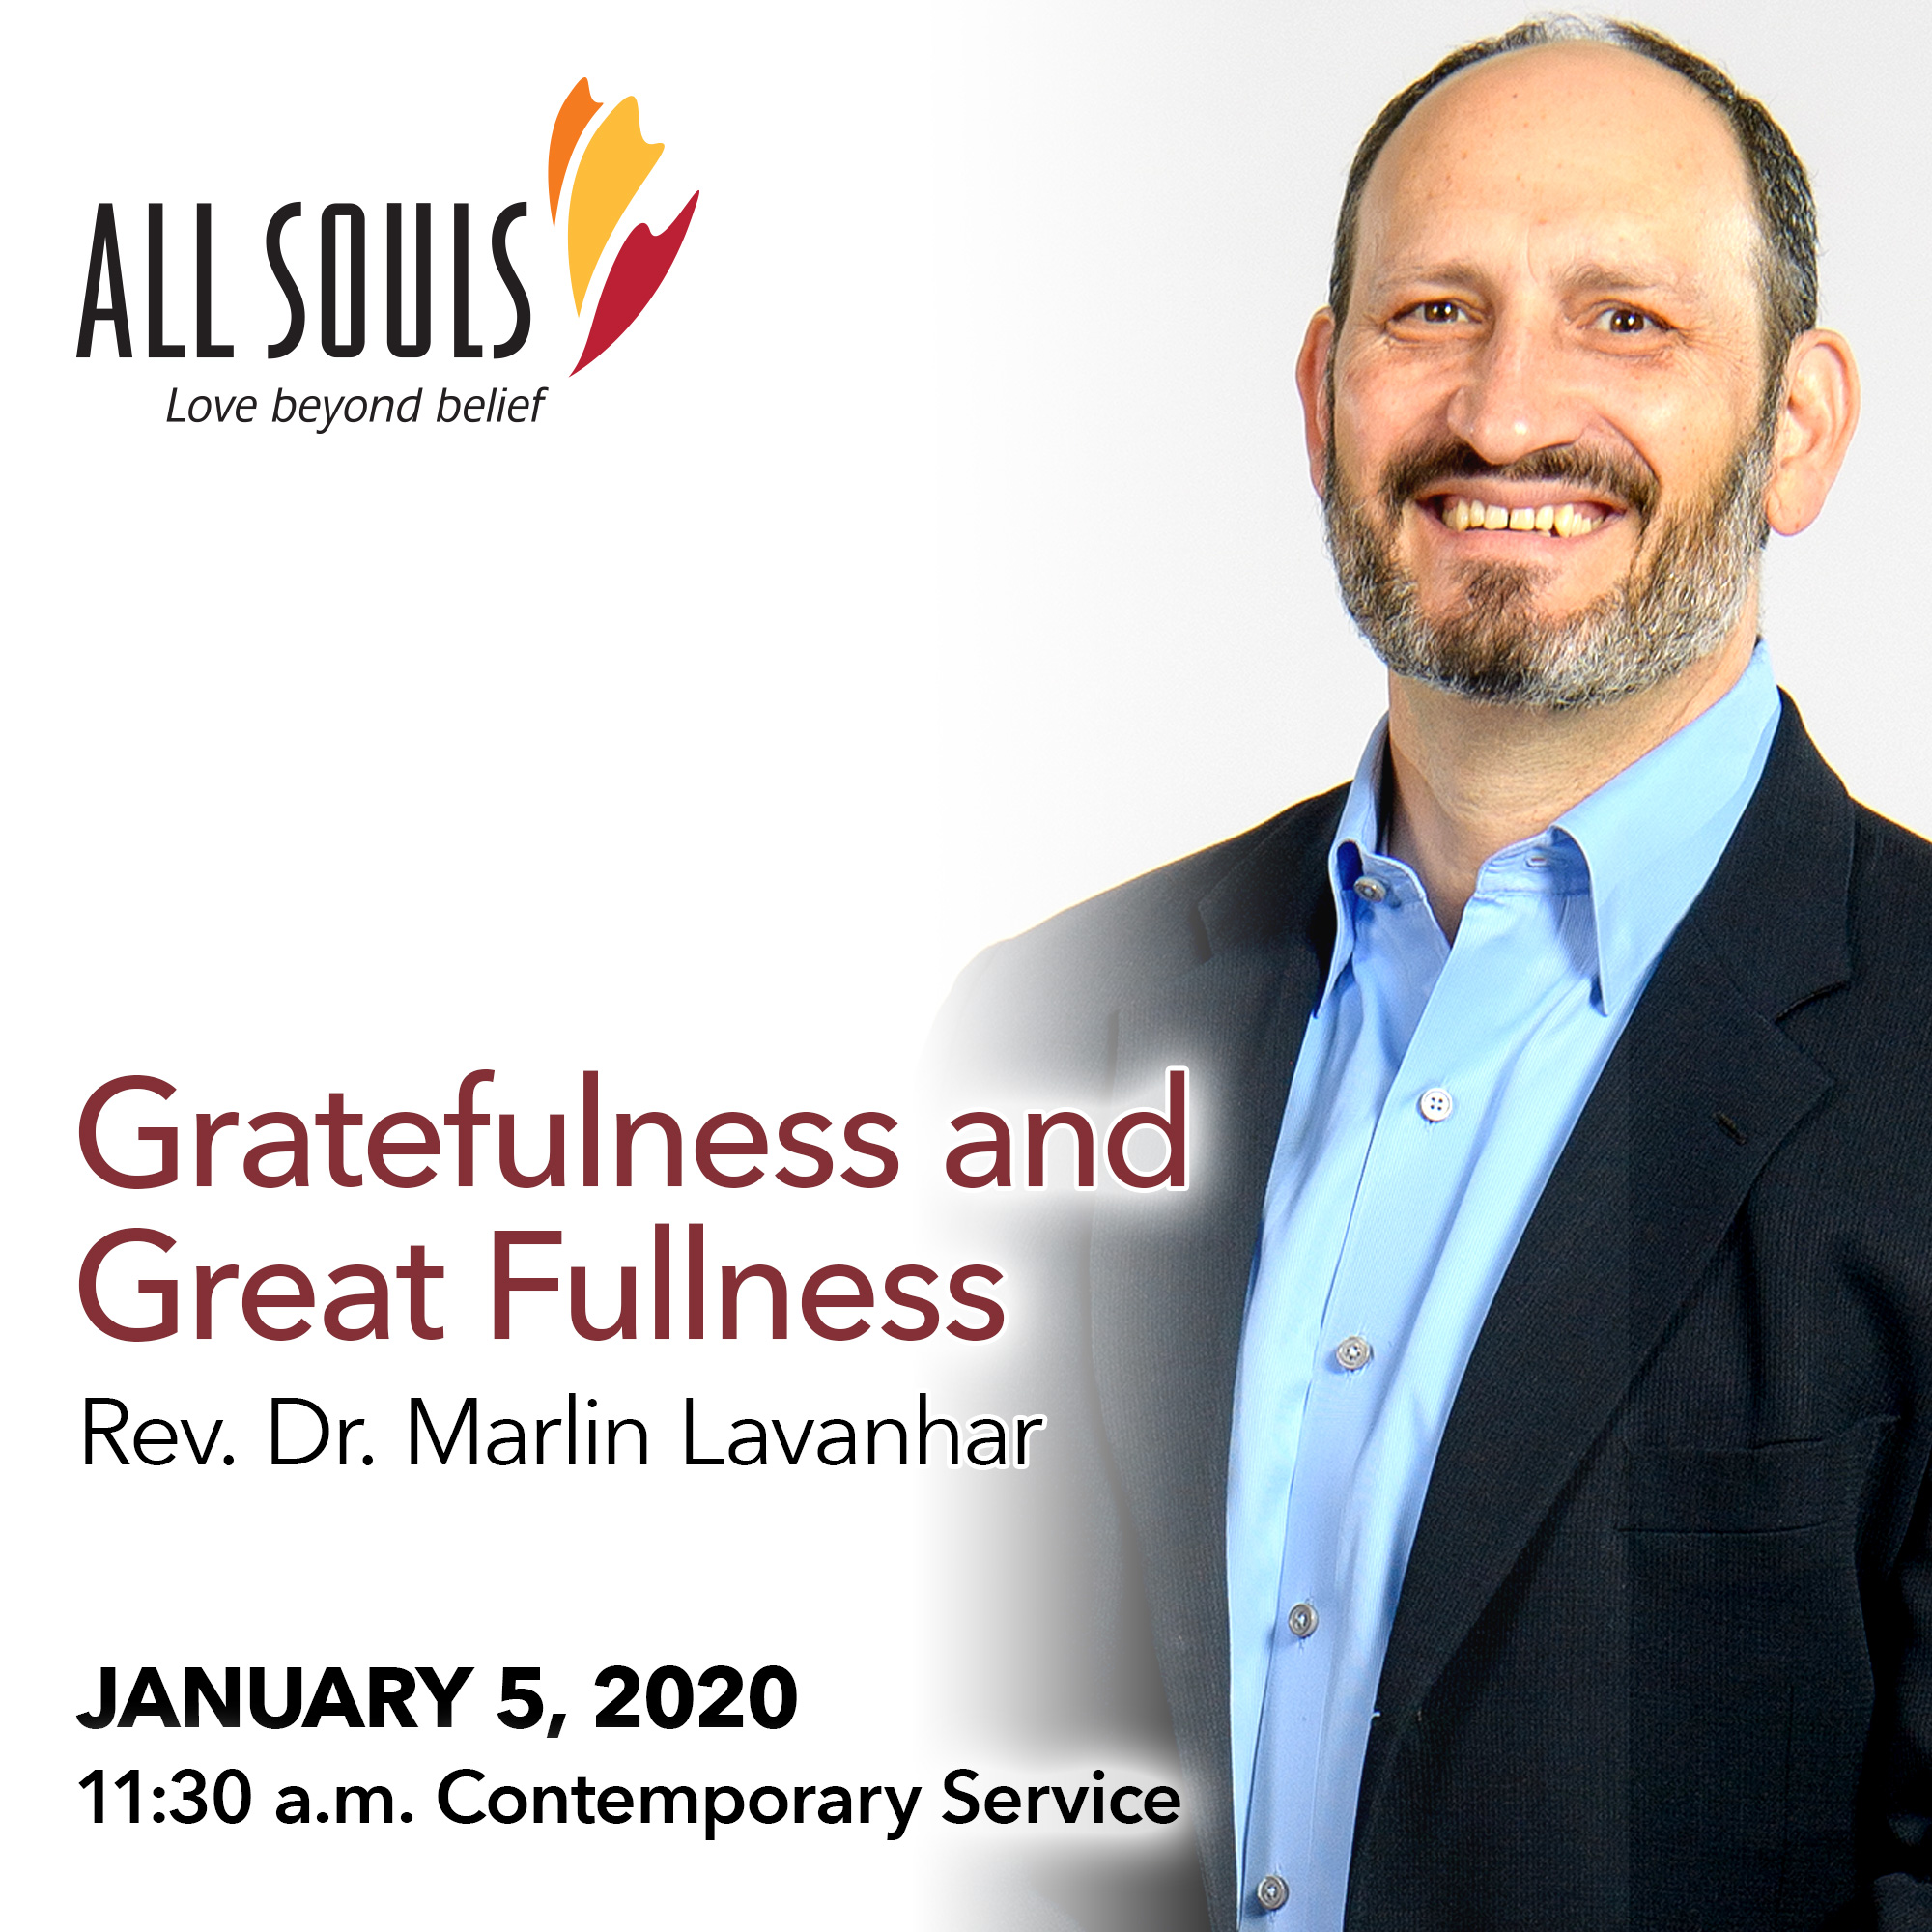 'GRATEFULNESS AND GREAT FULLNESS' - A sermon by Rev. Dr. Marlin Lavanhar (Contemporary Service) show art